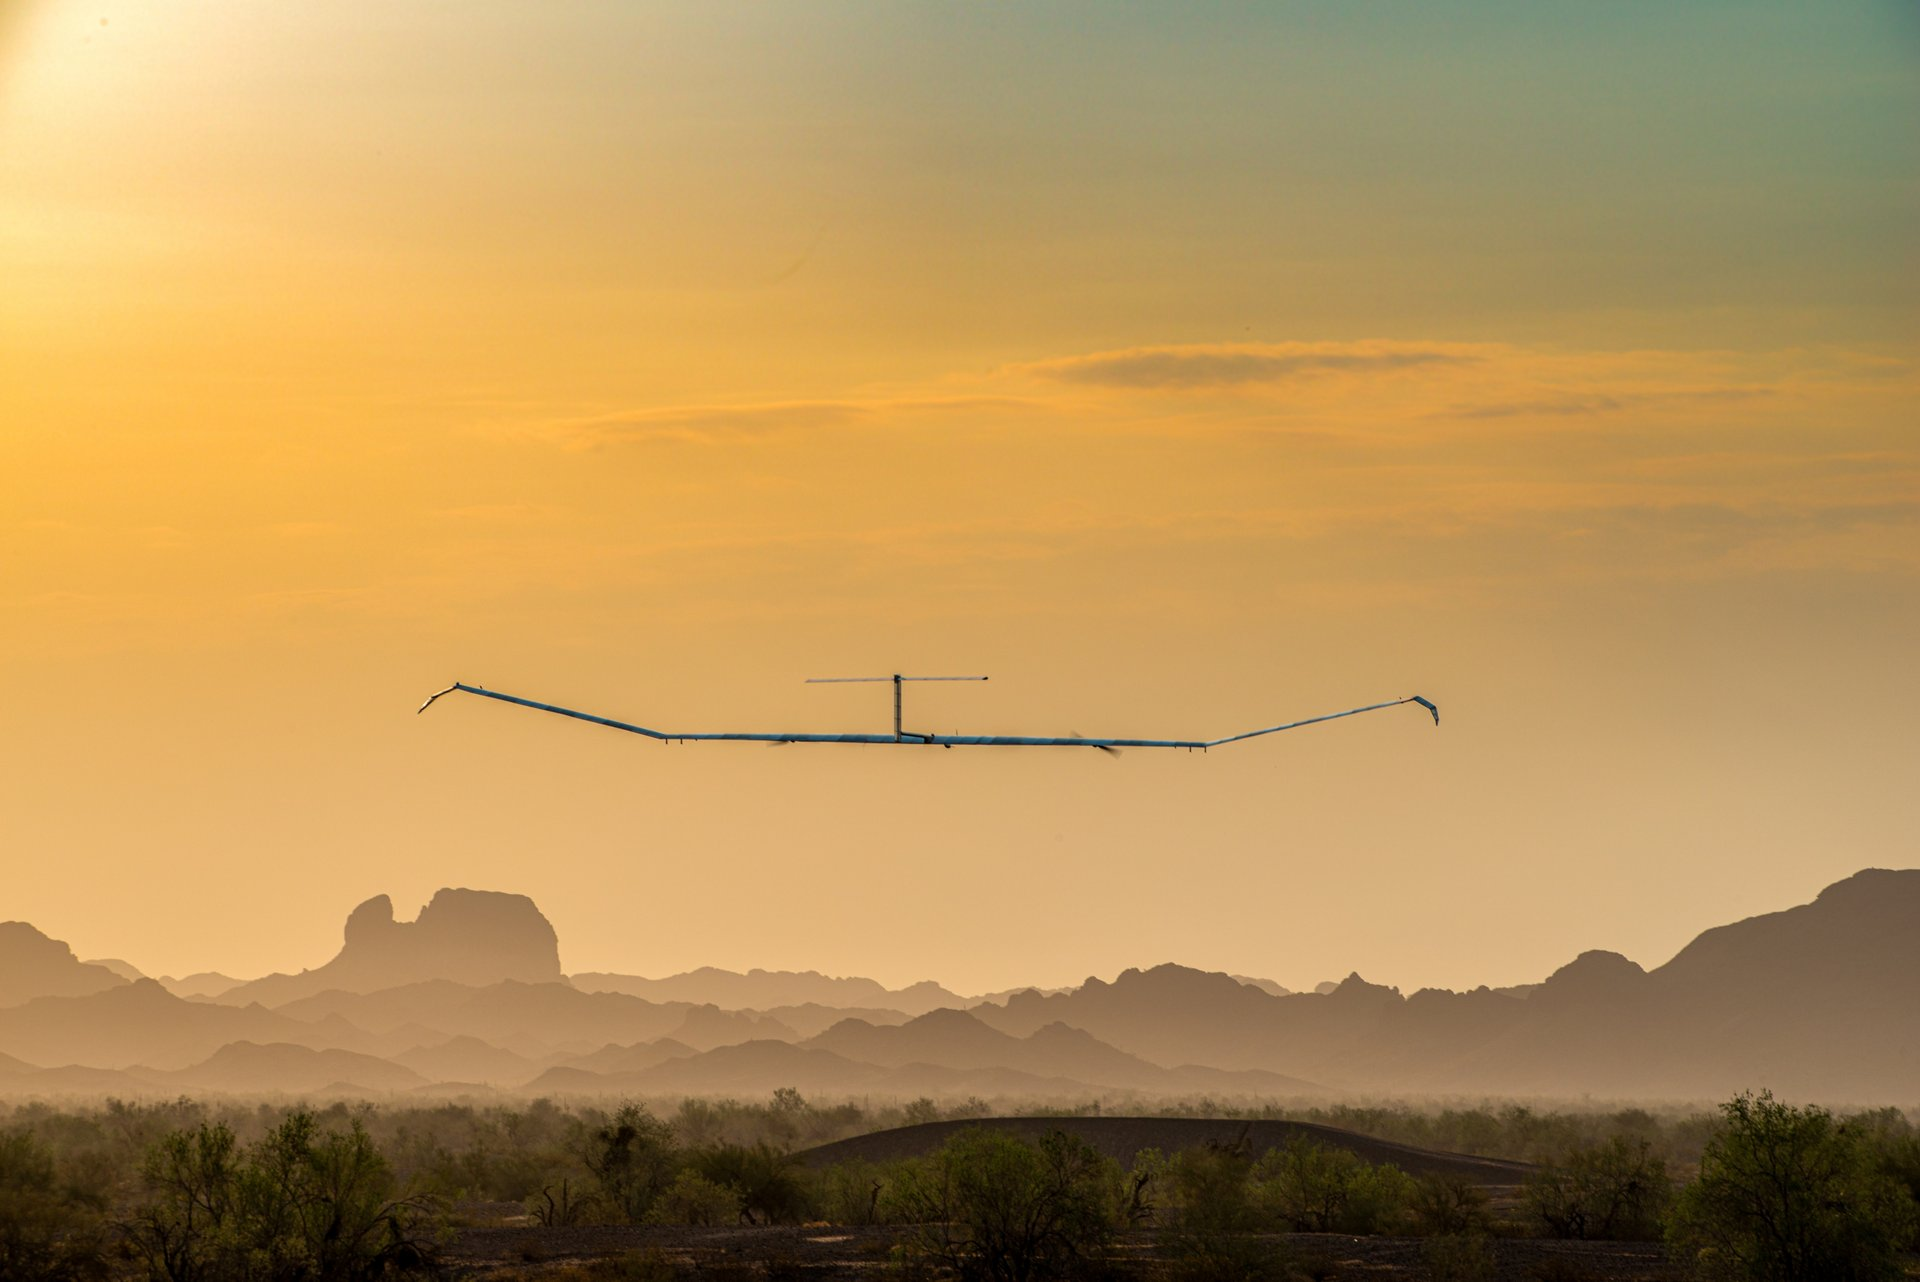 Airbus Zephyr Solar High Altitude Platform System (HAPS) reaches new heights in its successful 2021 summer test flights.